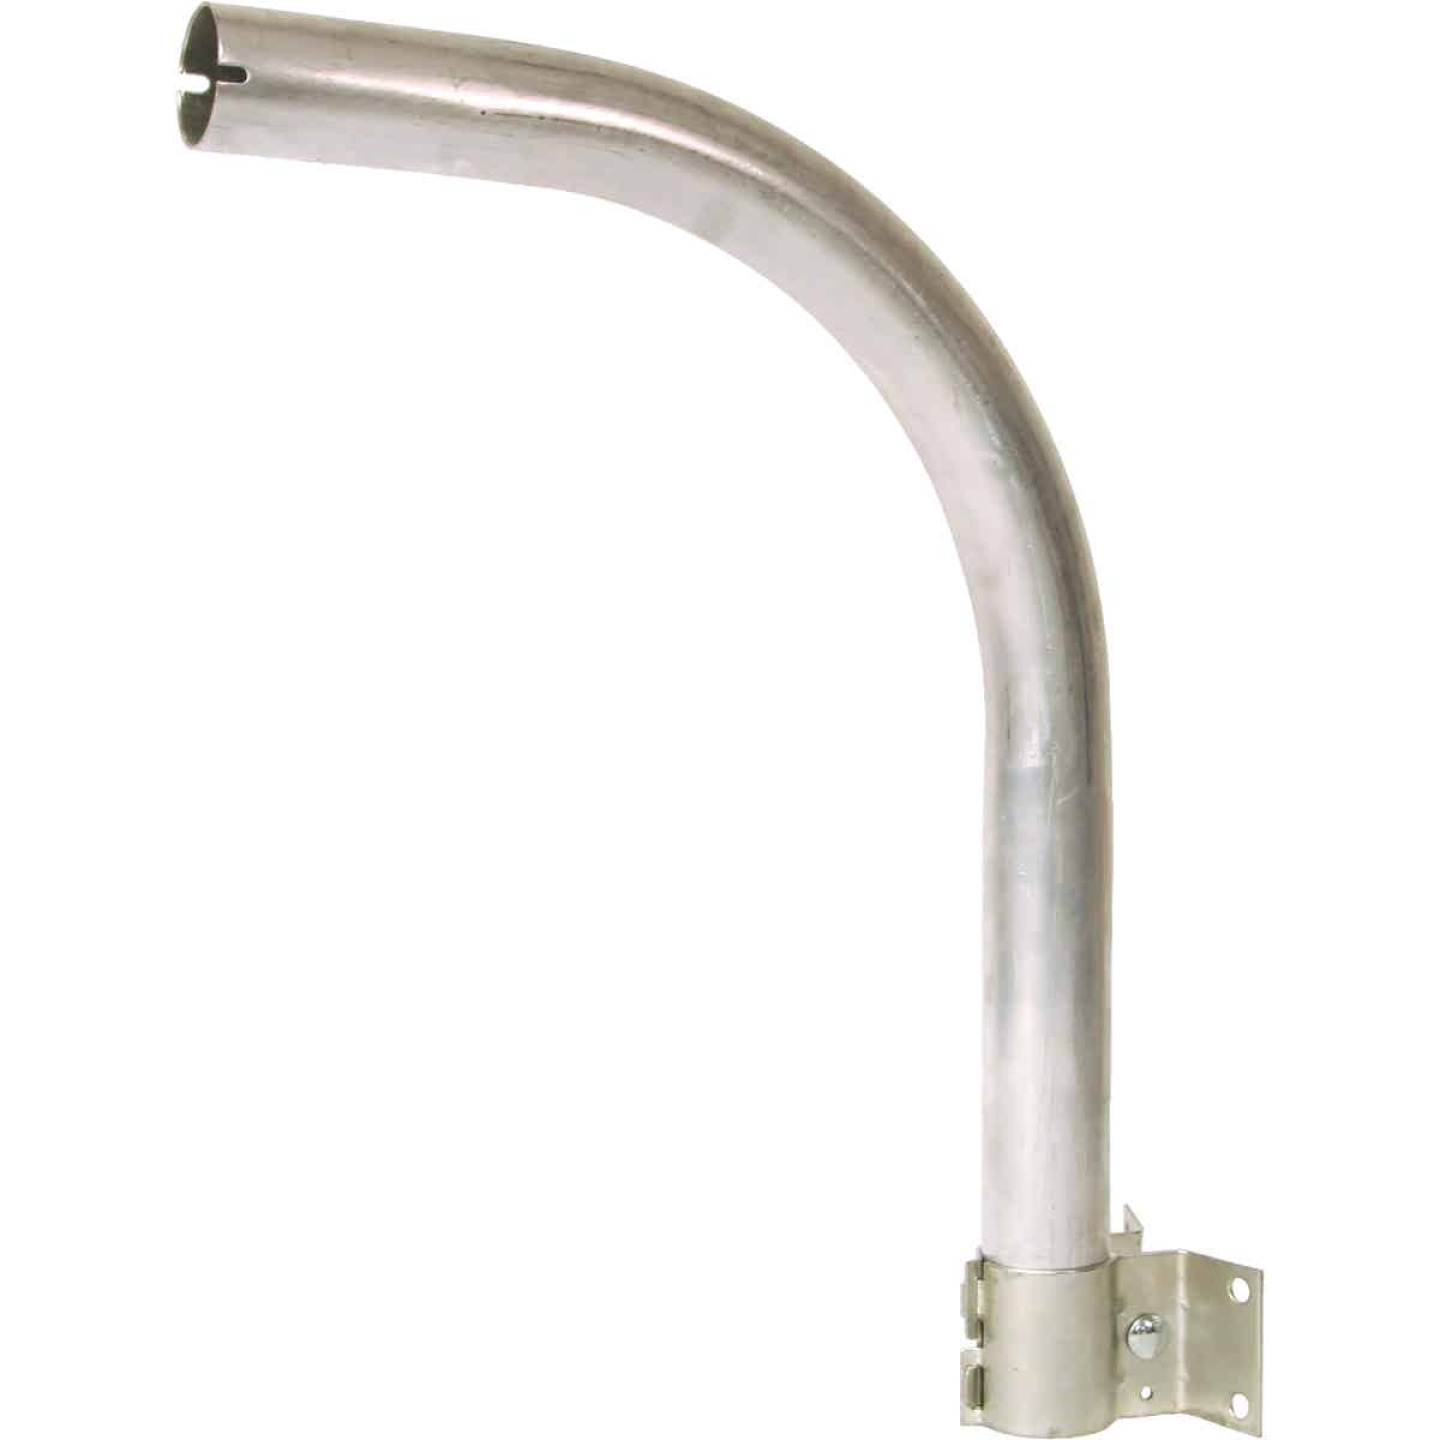 All-Pro 24 In. Aluminum Mounting Arm Image 1